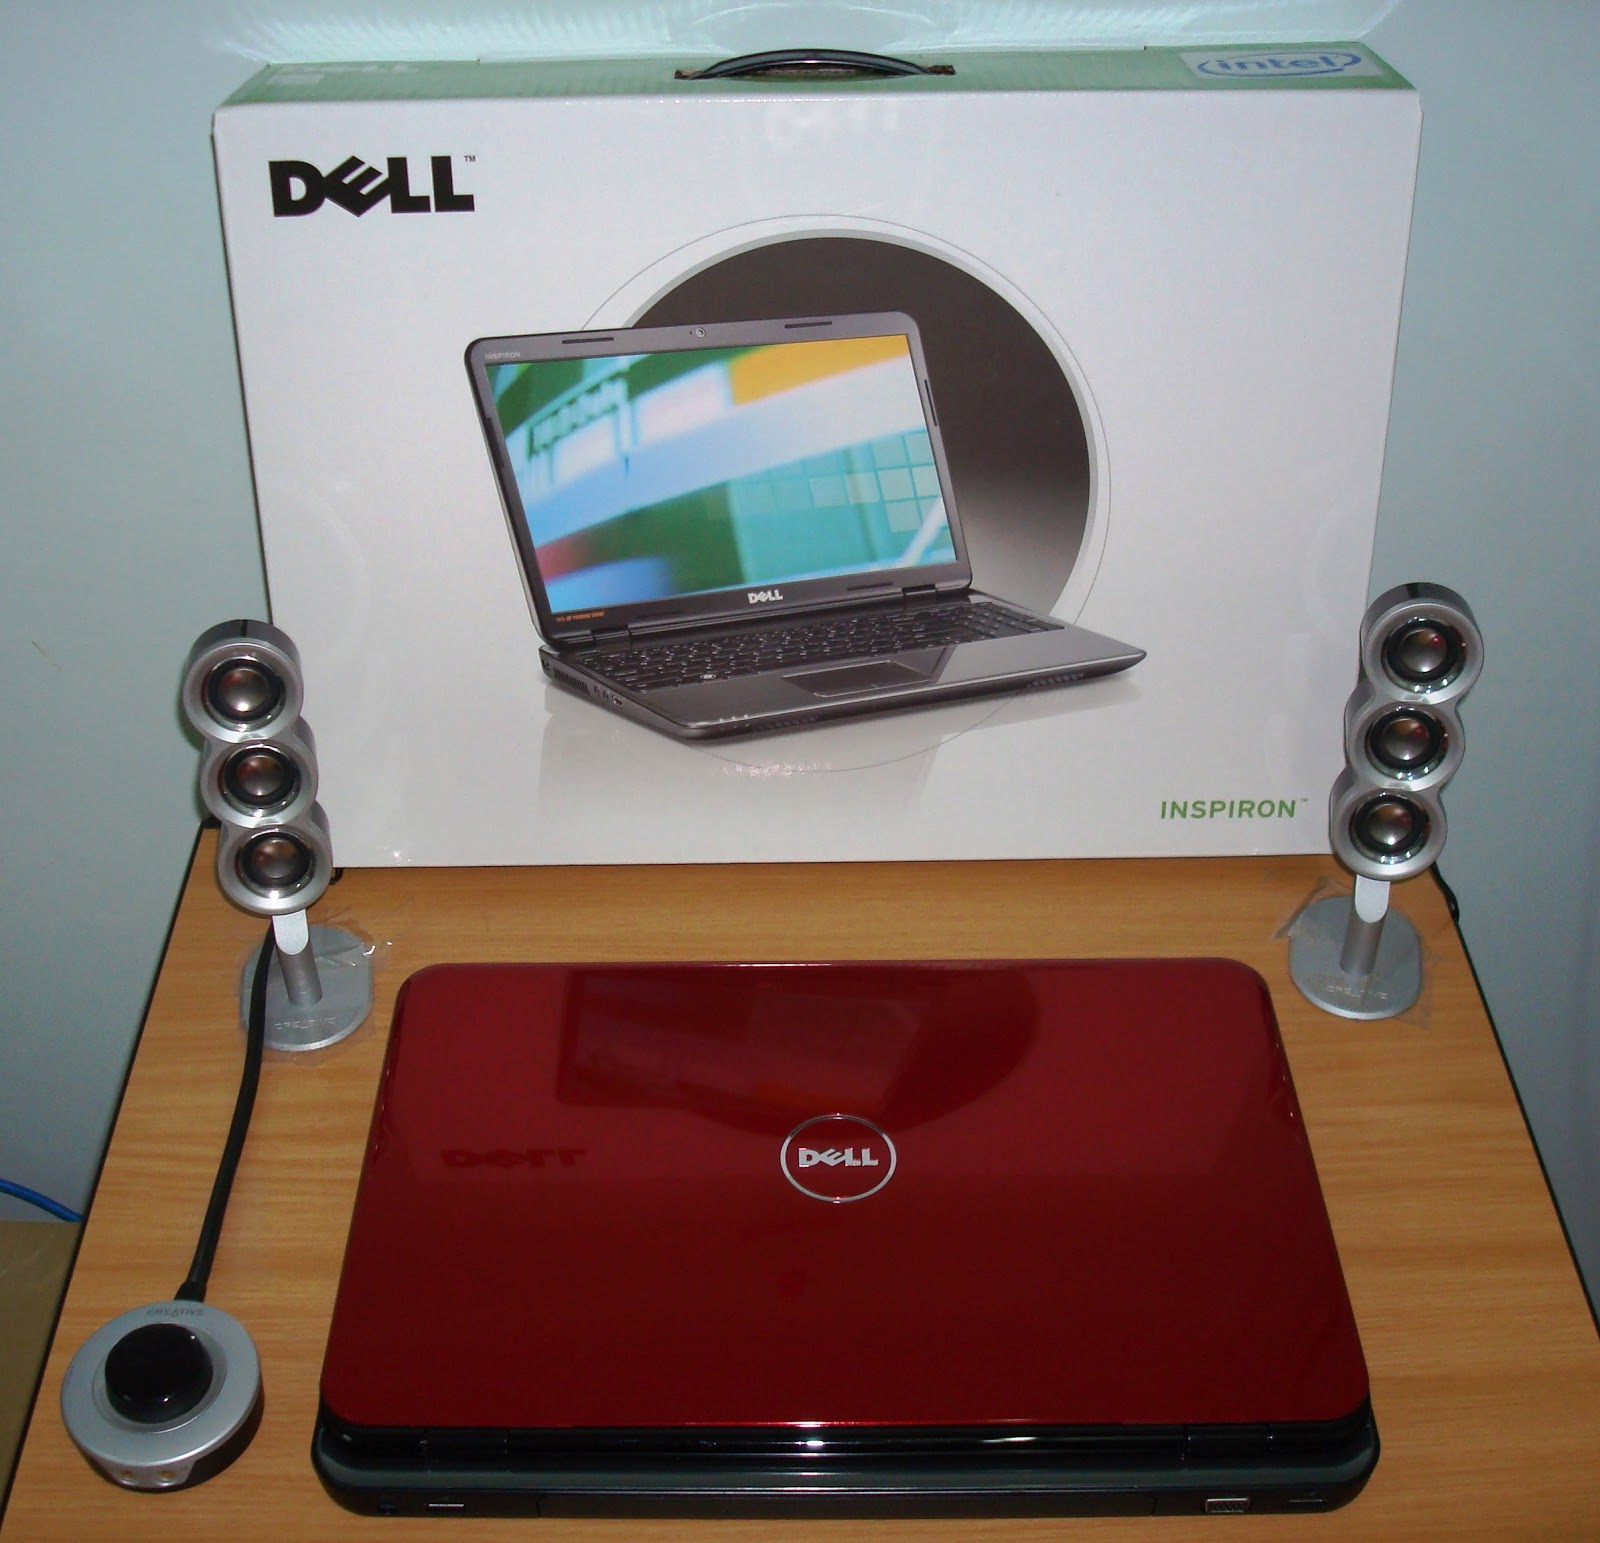 Red Fox - Photographs, Diaries, and Thoughts: My New DELL Laptop